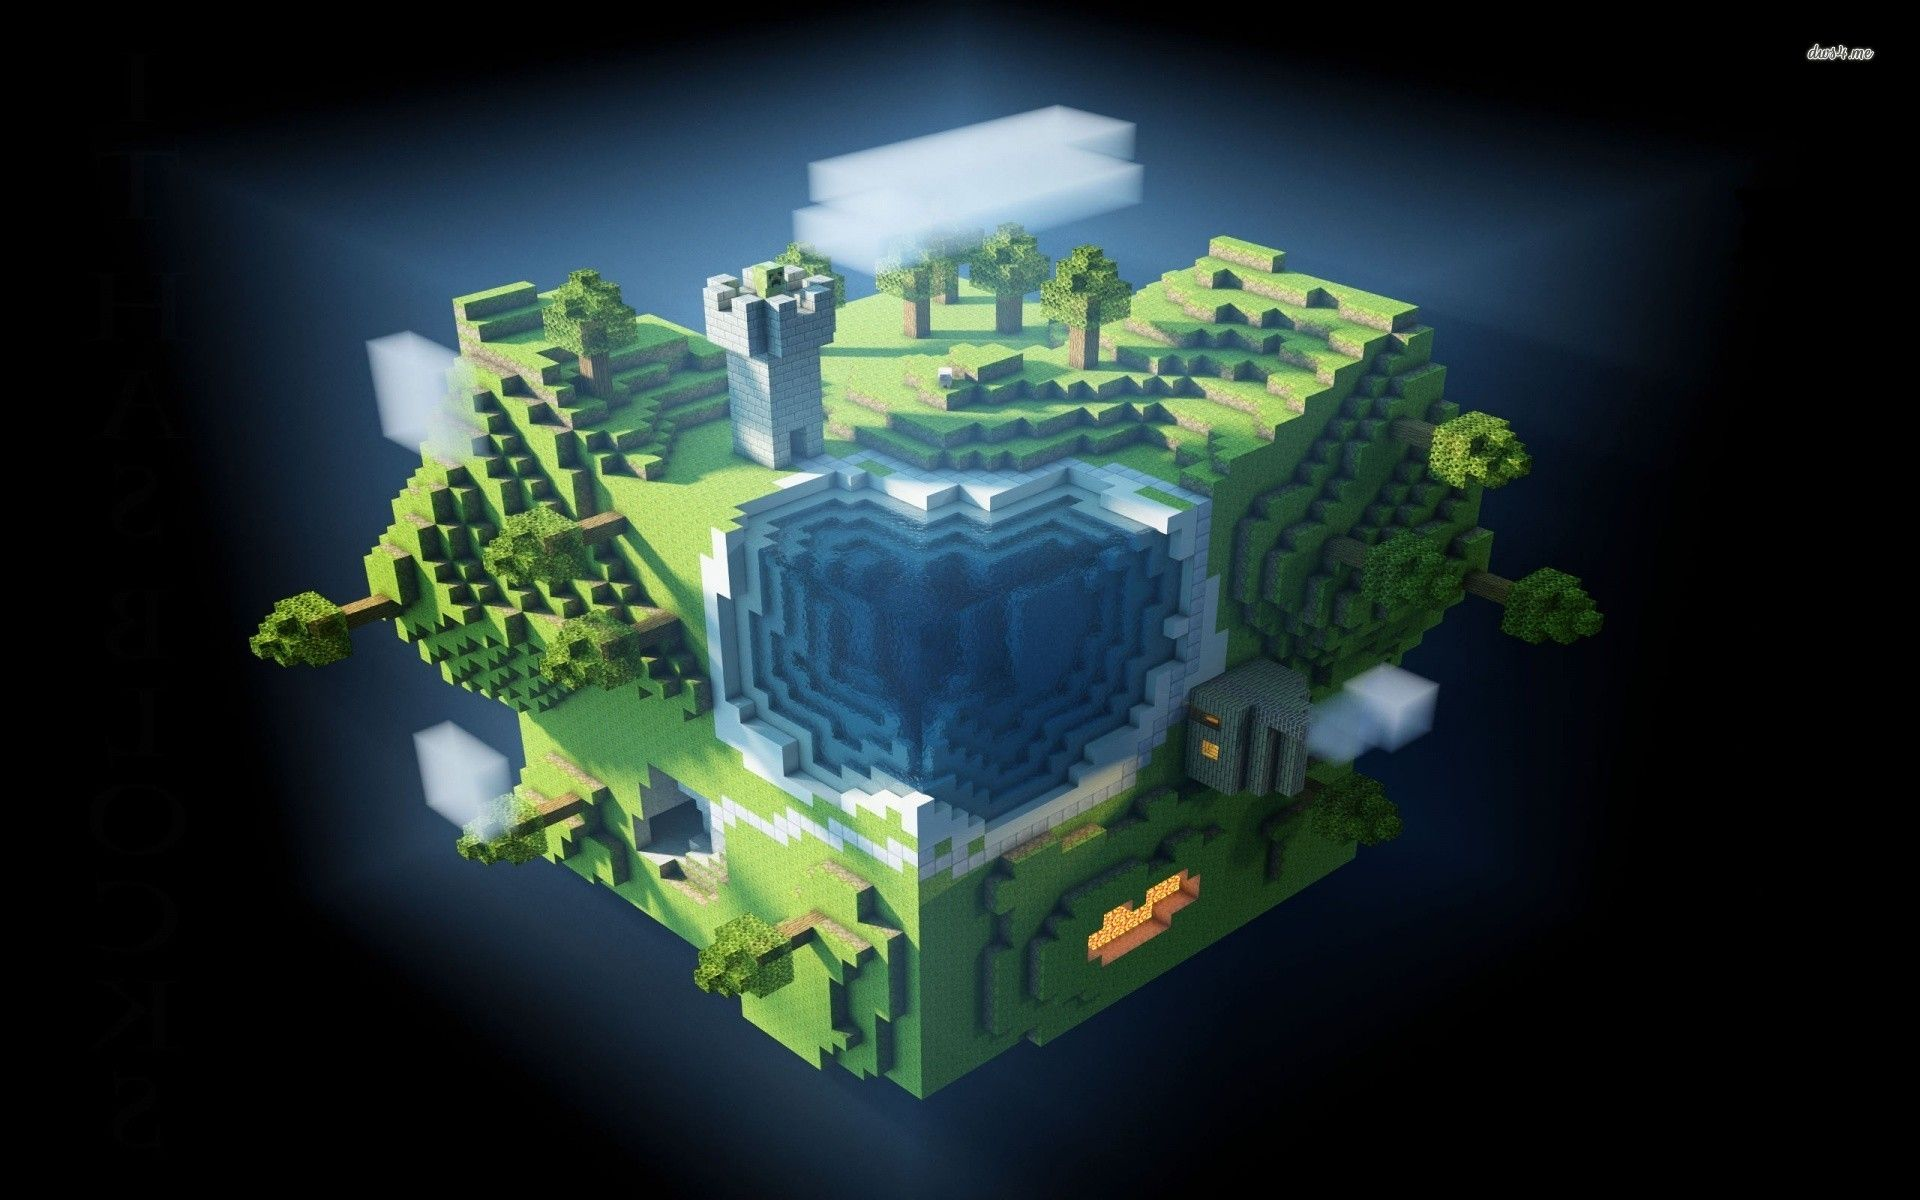 minecraft wallpapers free download group 1920a—1080 minecraft wallpapers 31 wallpapers adorable